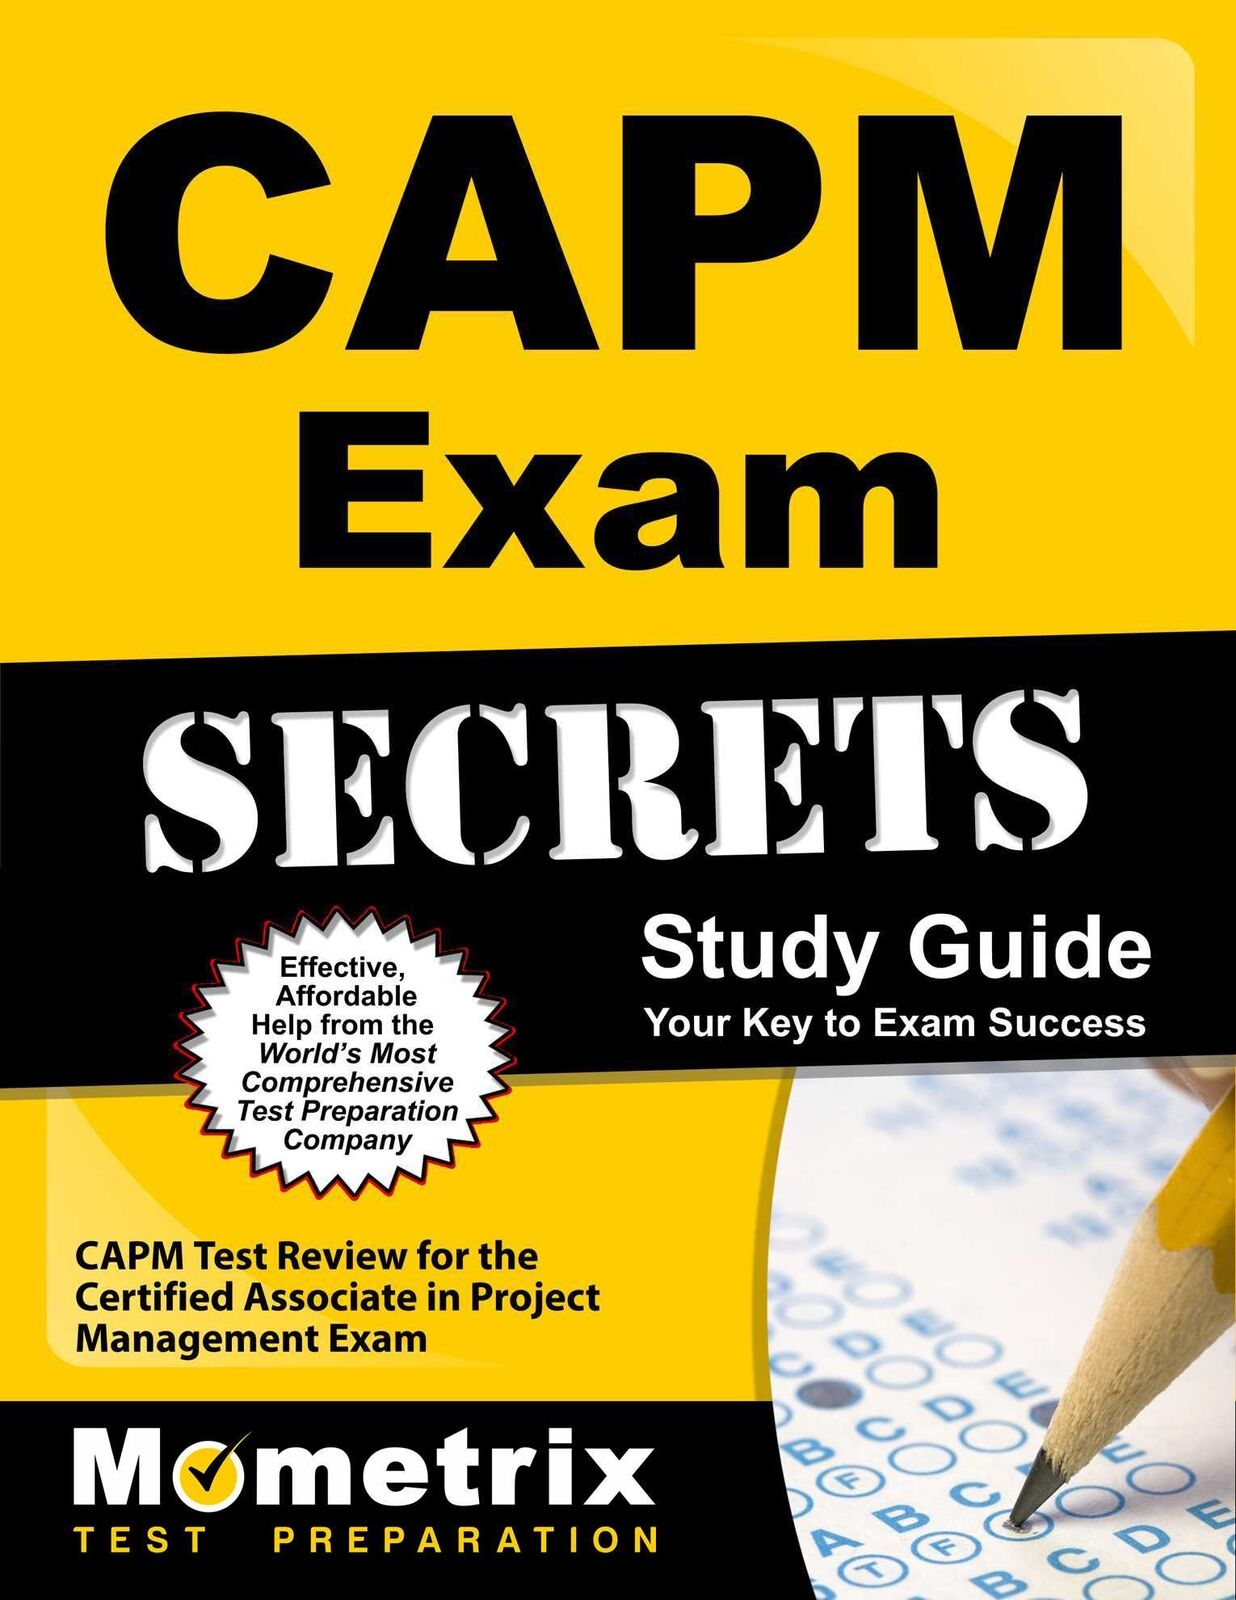 Capm Exam Secrets Study Guide Capm Test Review For The Certified